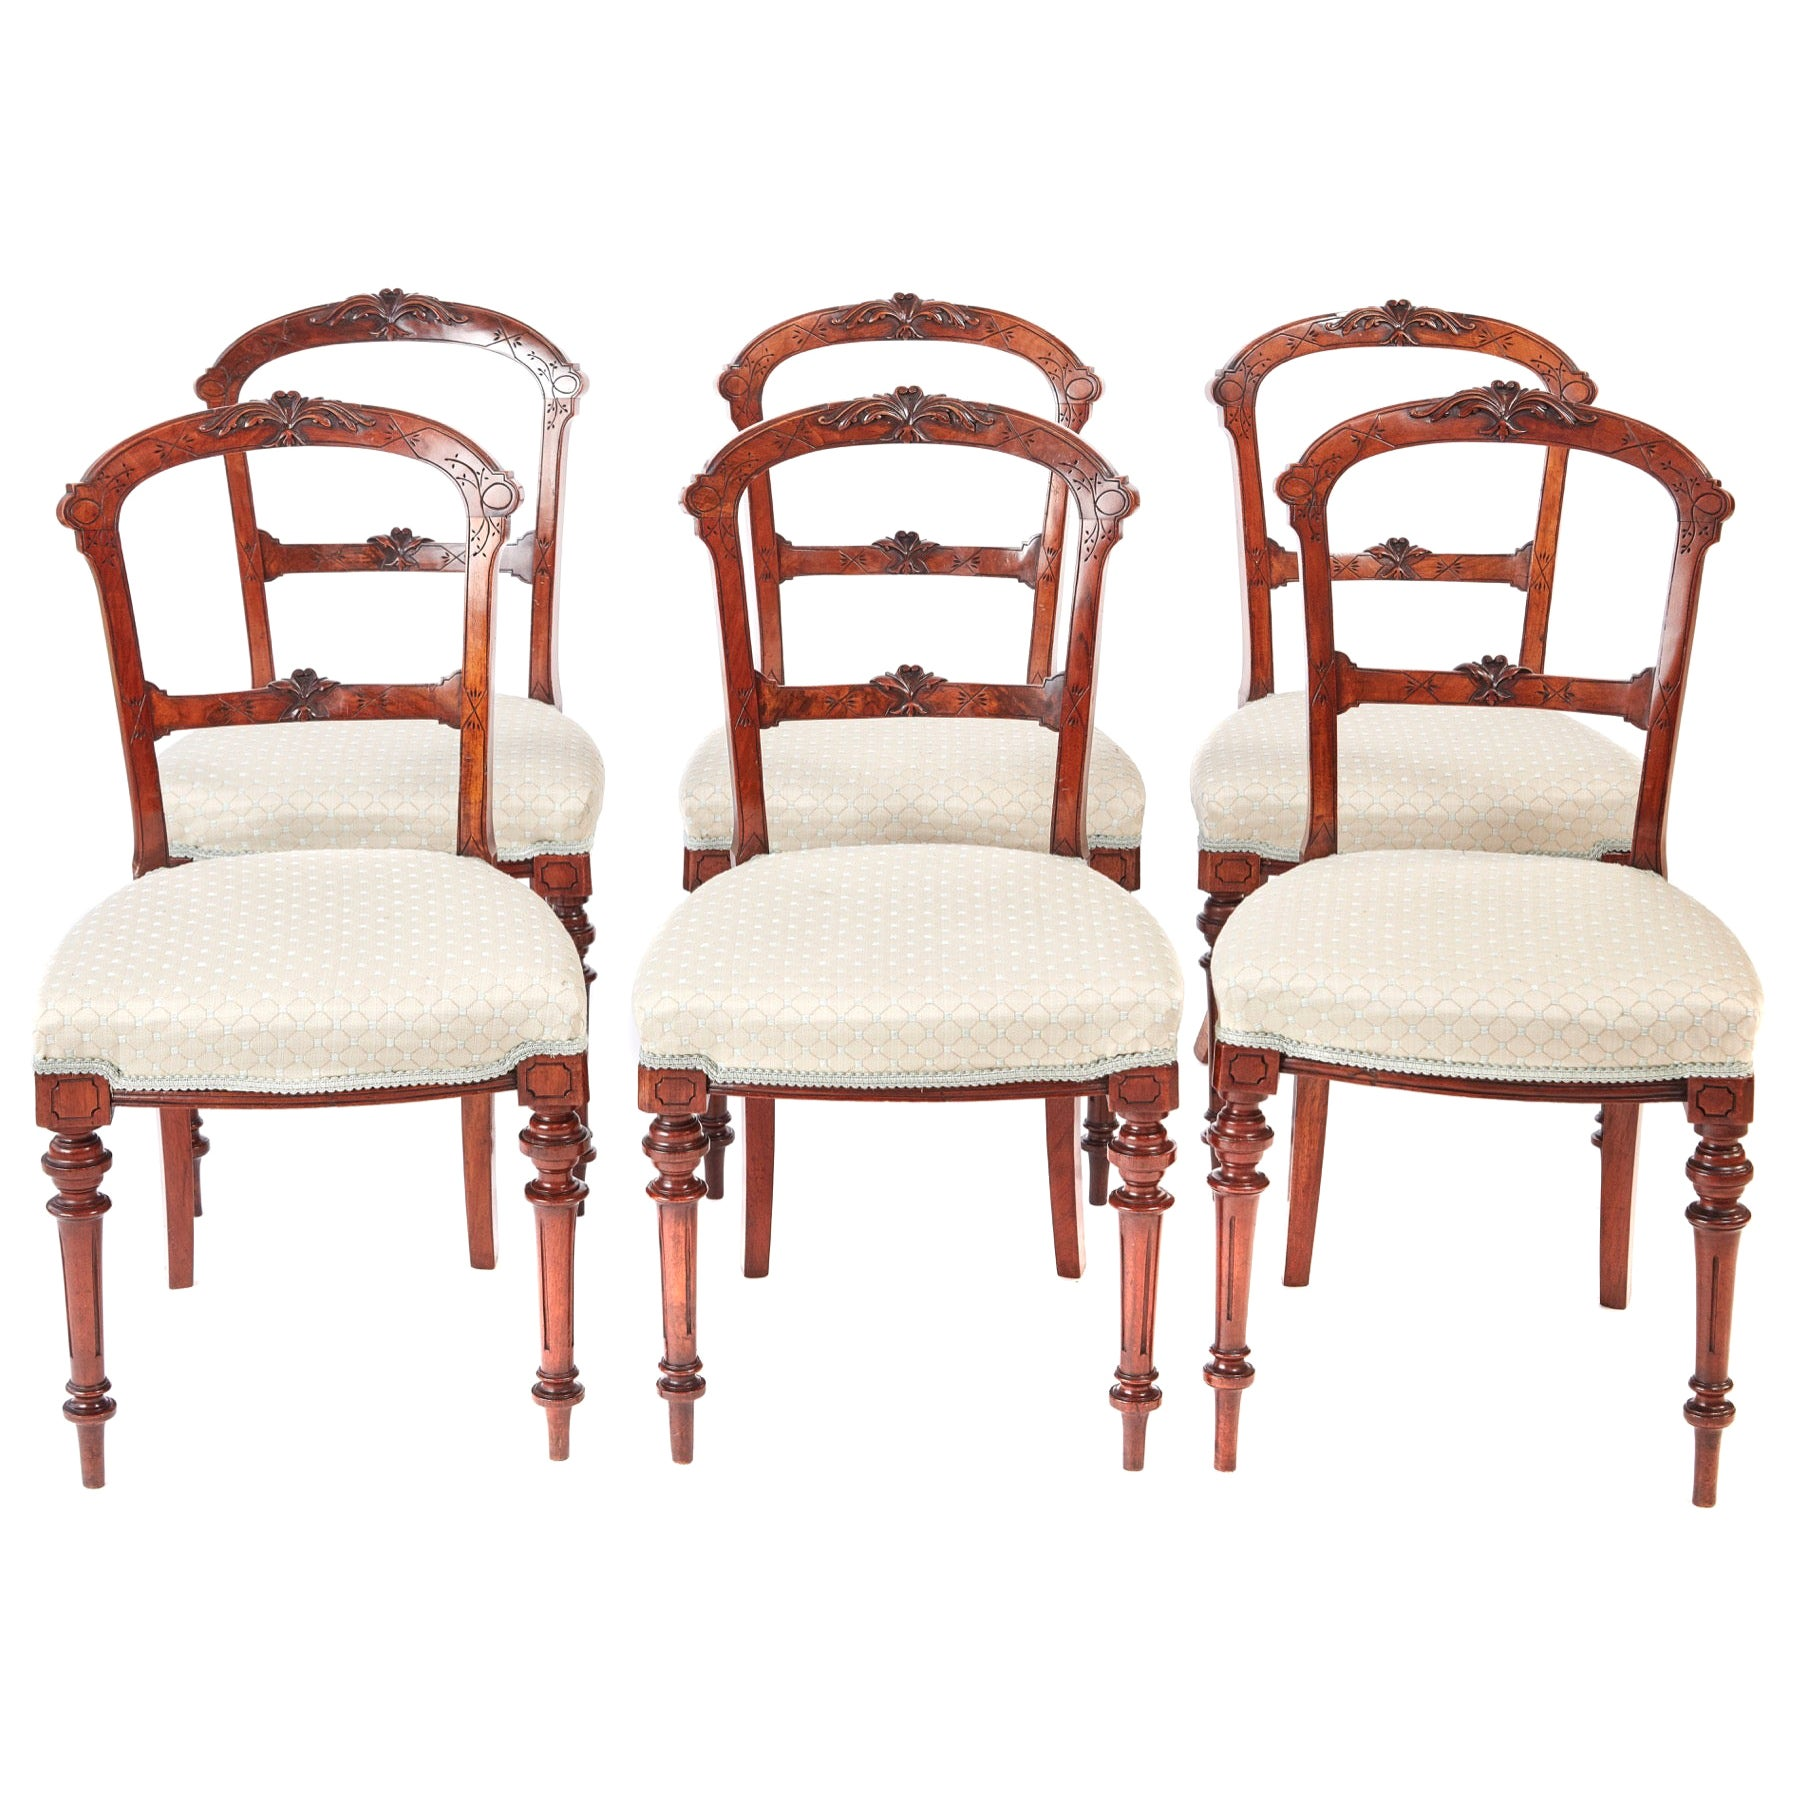 19th Century Set of Six Antique Victorian Walnut Dining Chairs